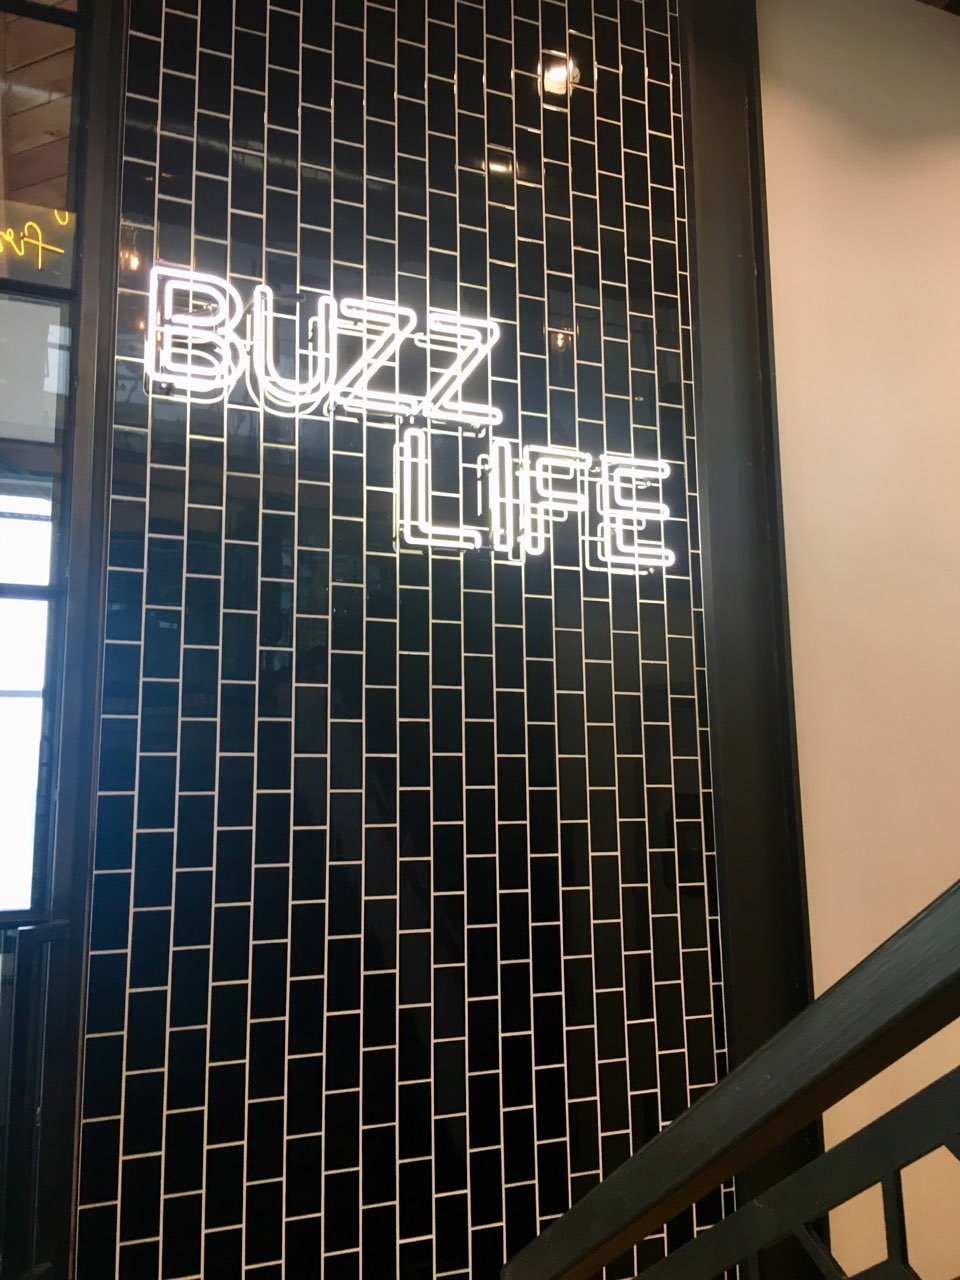 The Buzz Life in Hillcrest